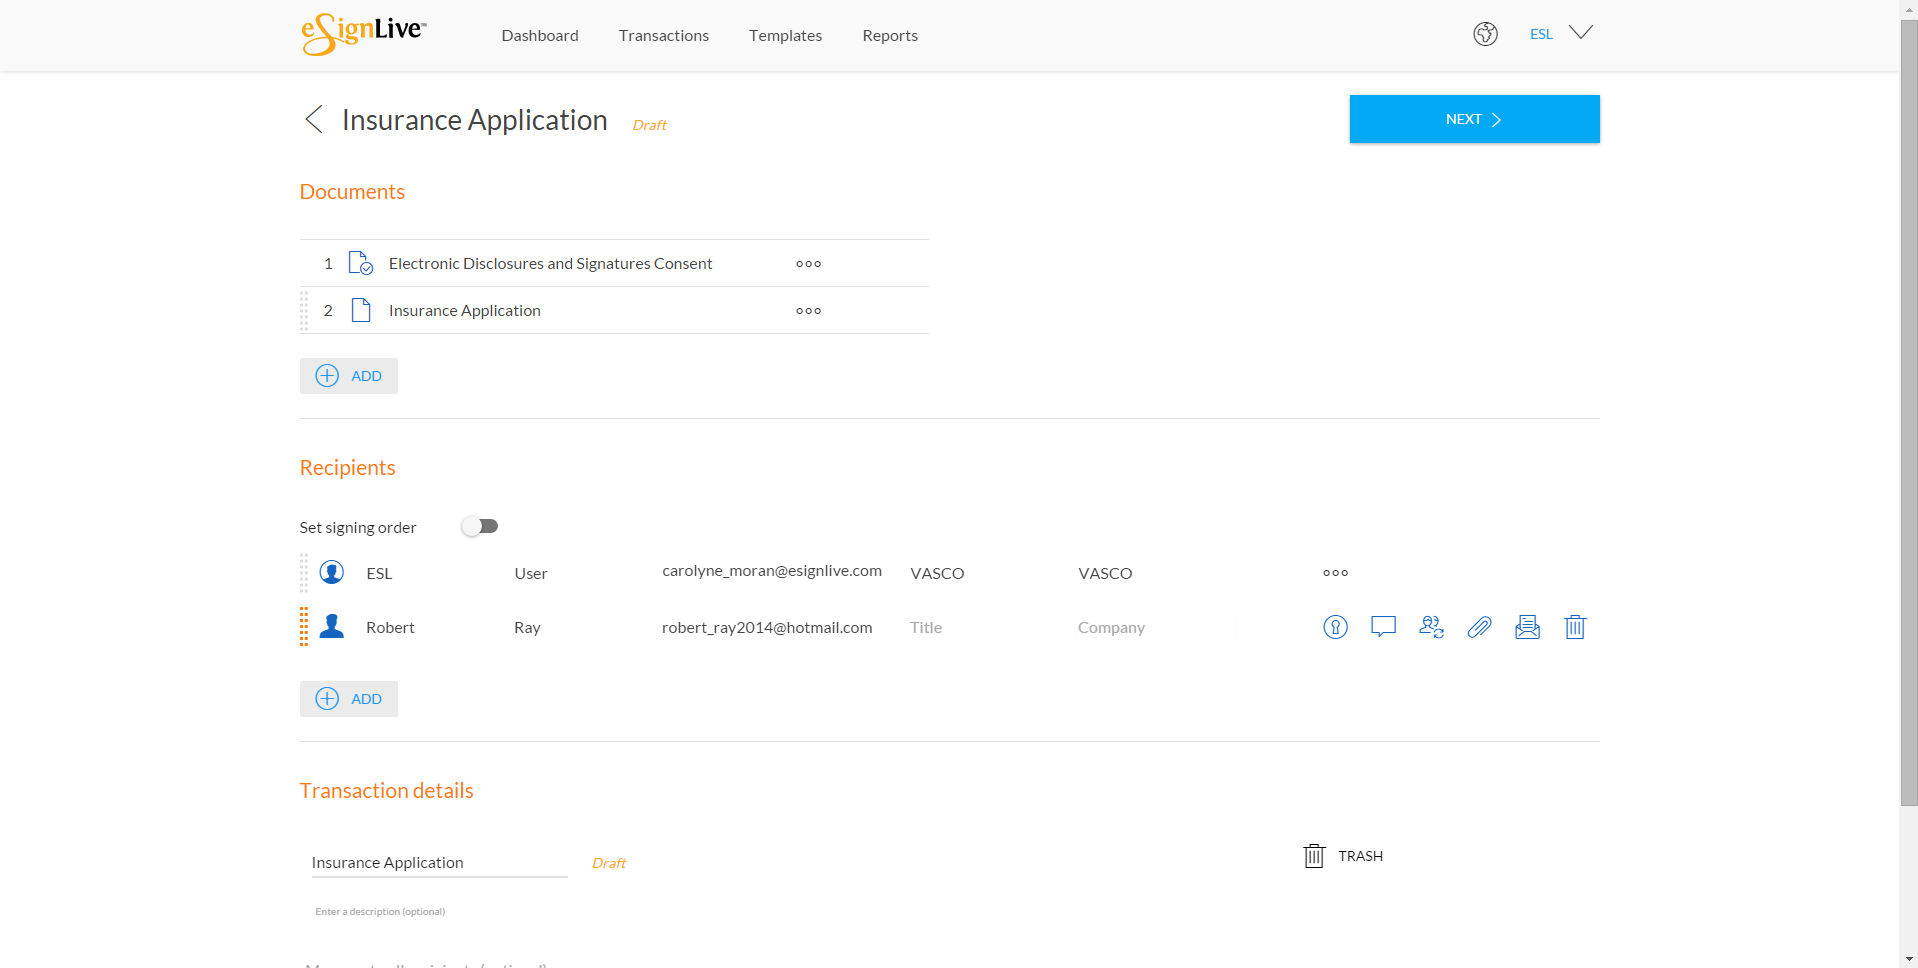 Add documents and recipients